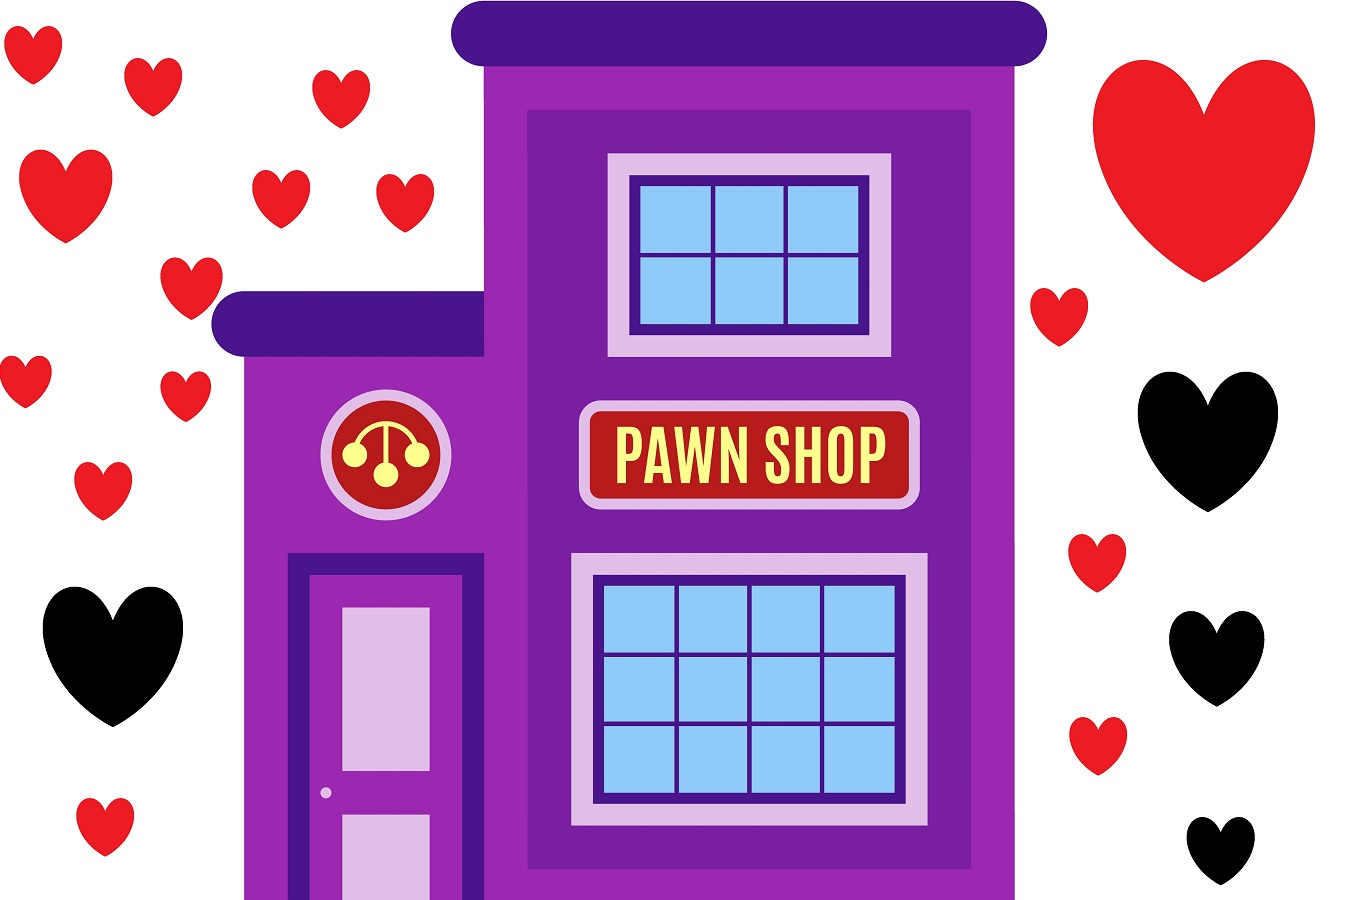 A Love & Pawn Story